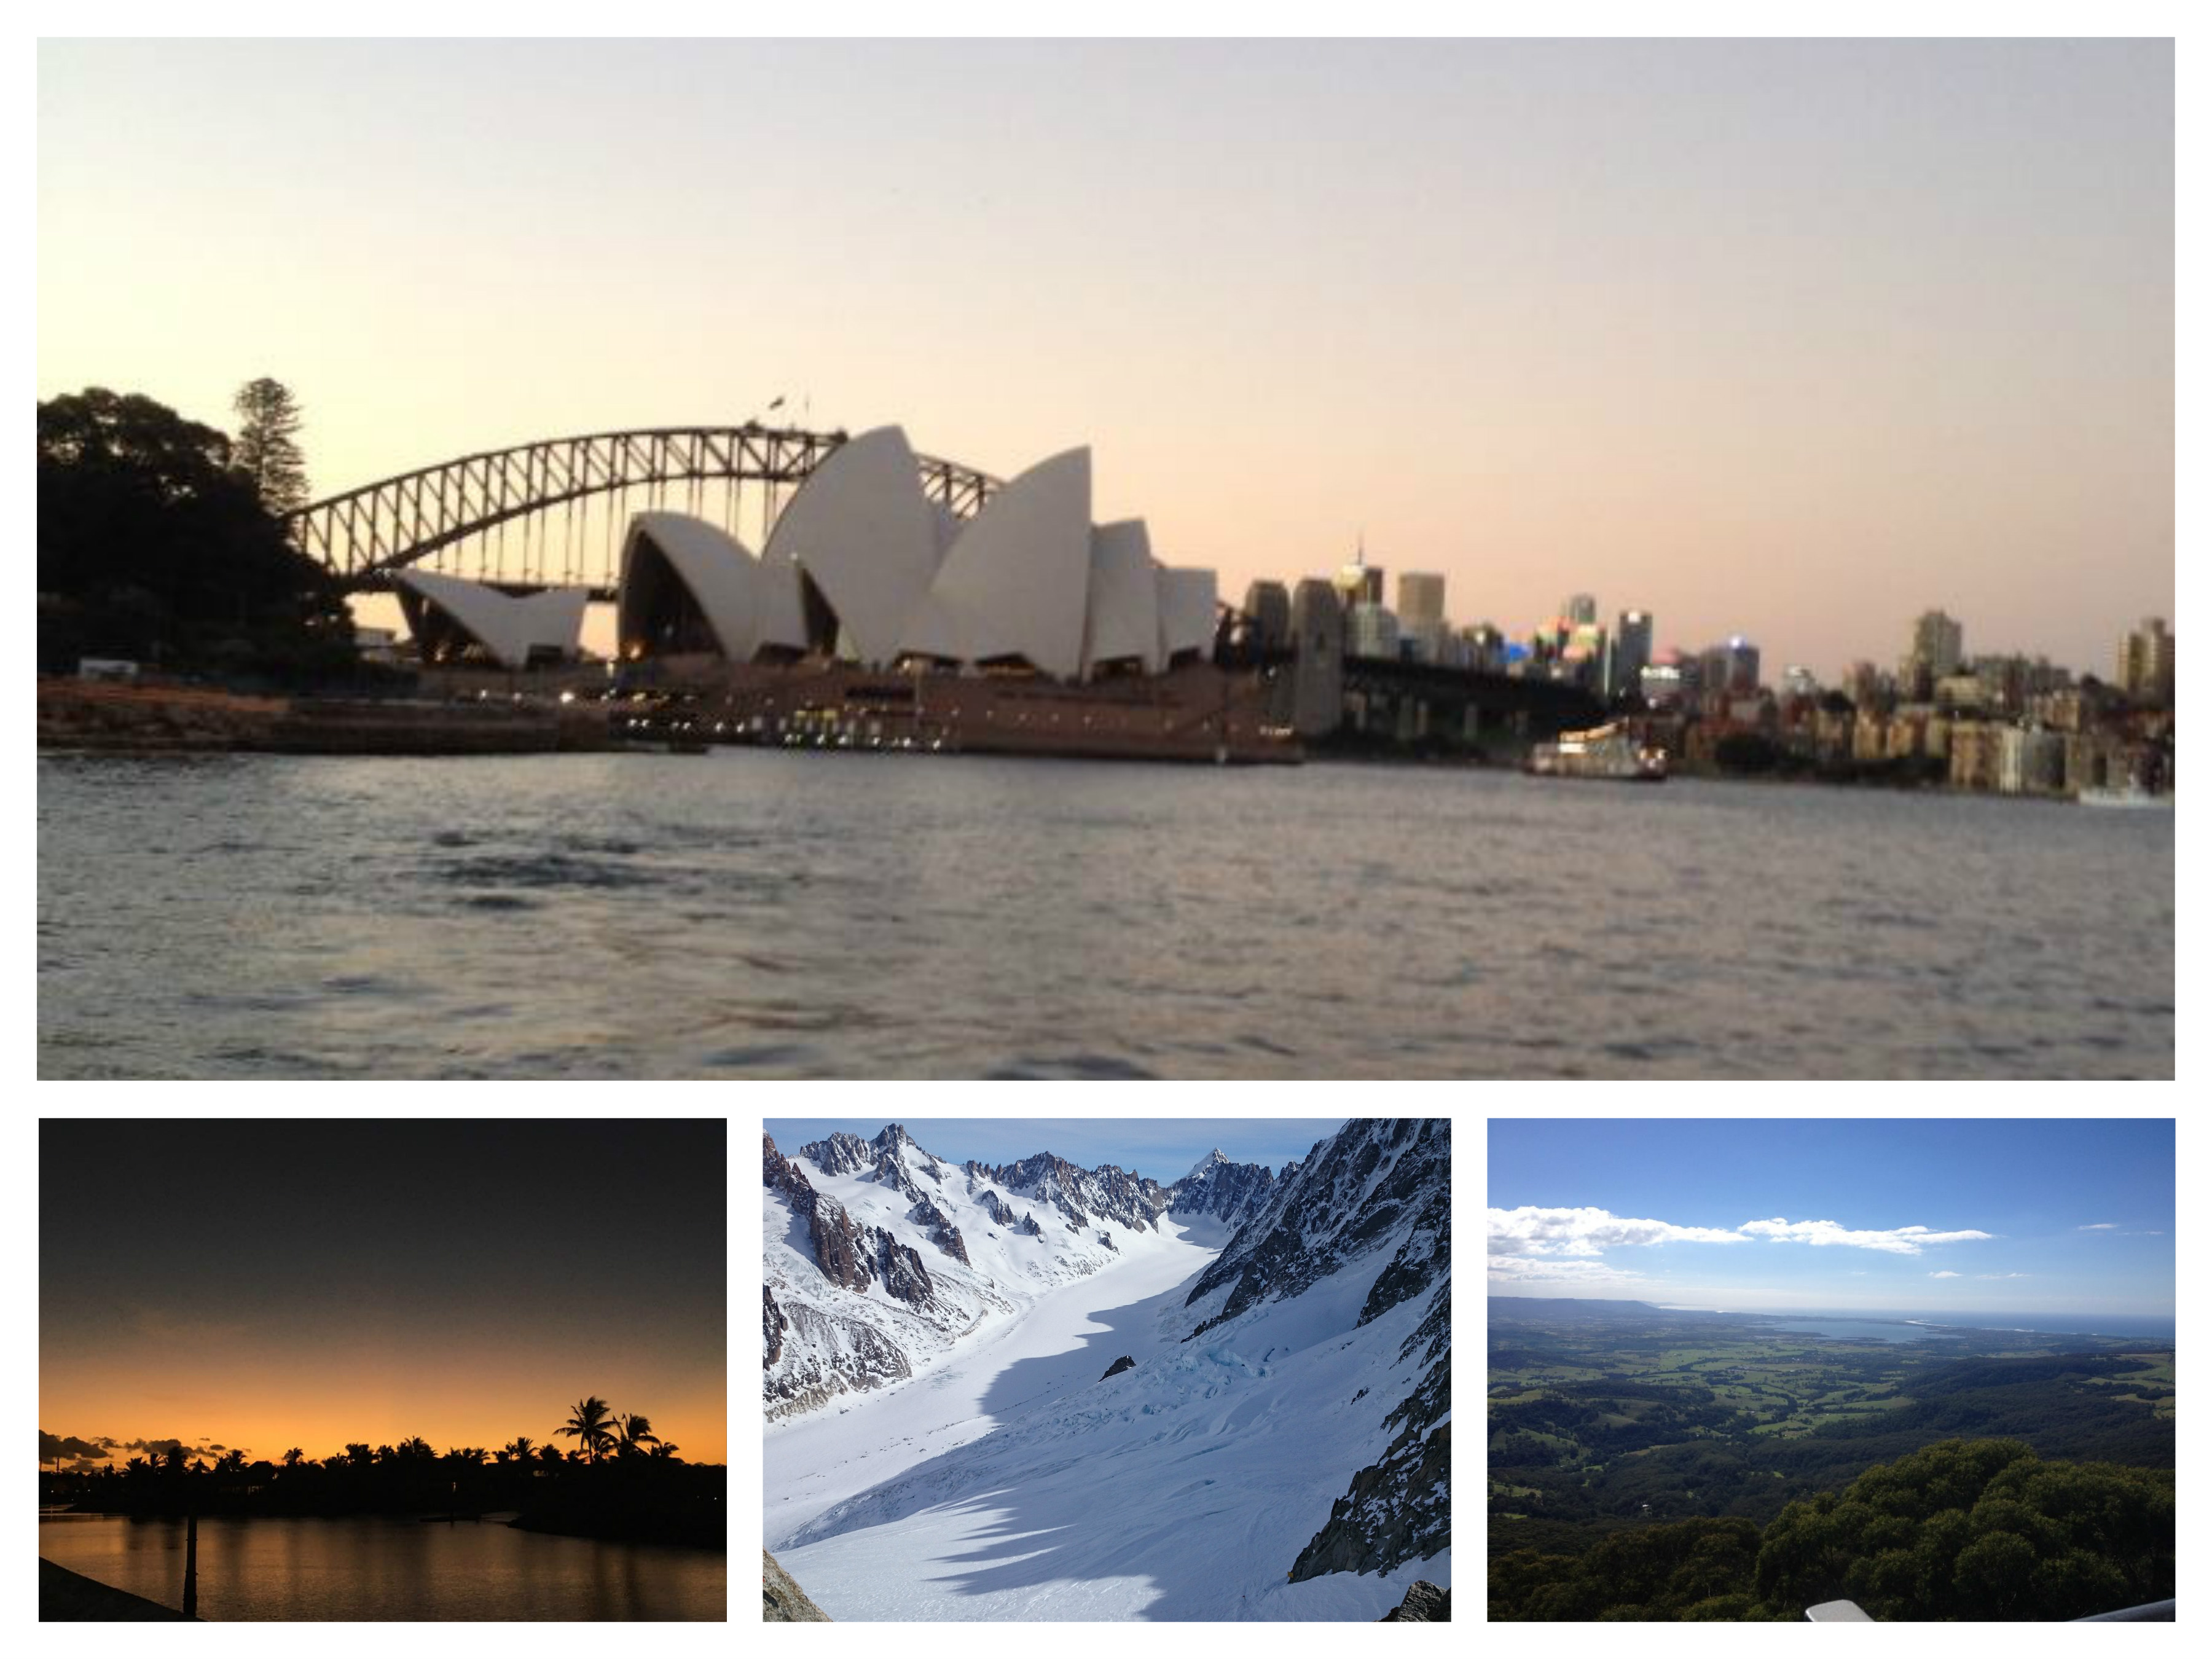 https://grandtouring.com.au/wp-content/uploads/2016/08/Gallery-Collage-06.jpg